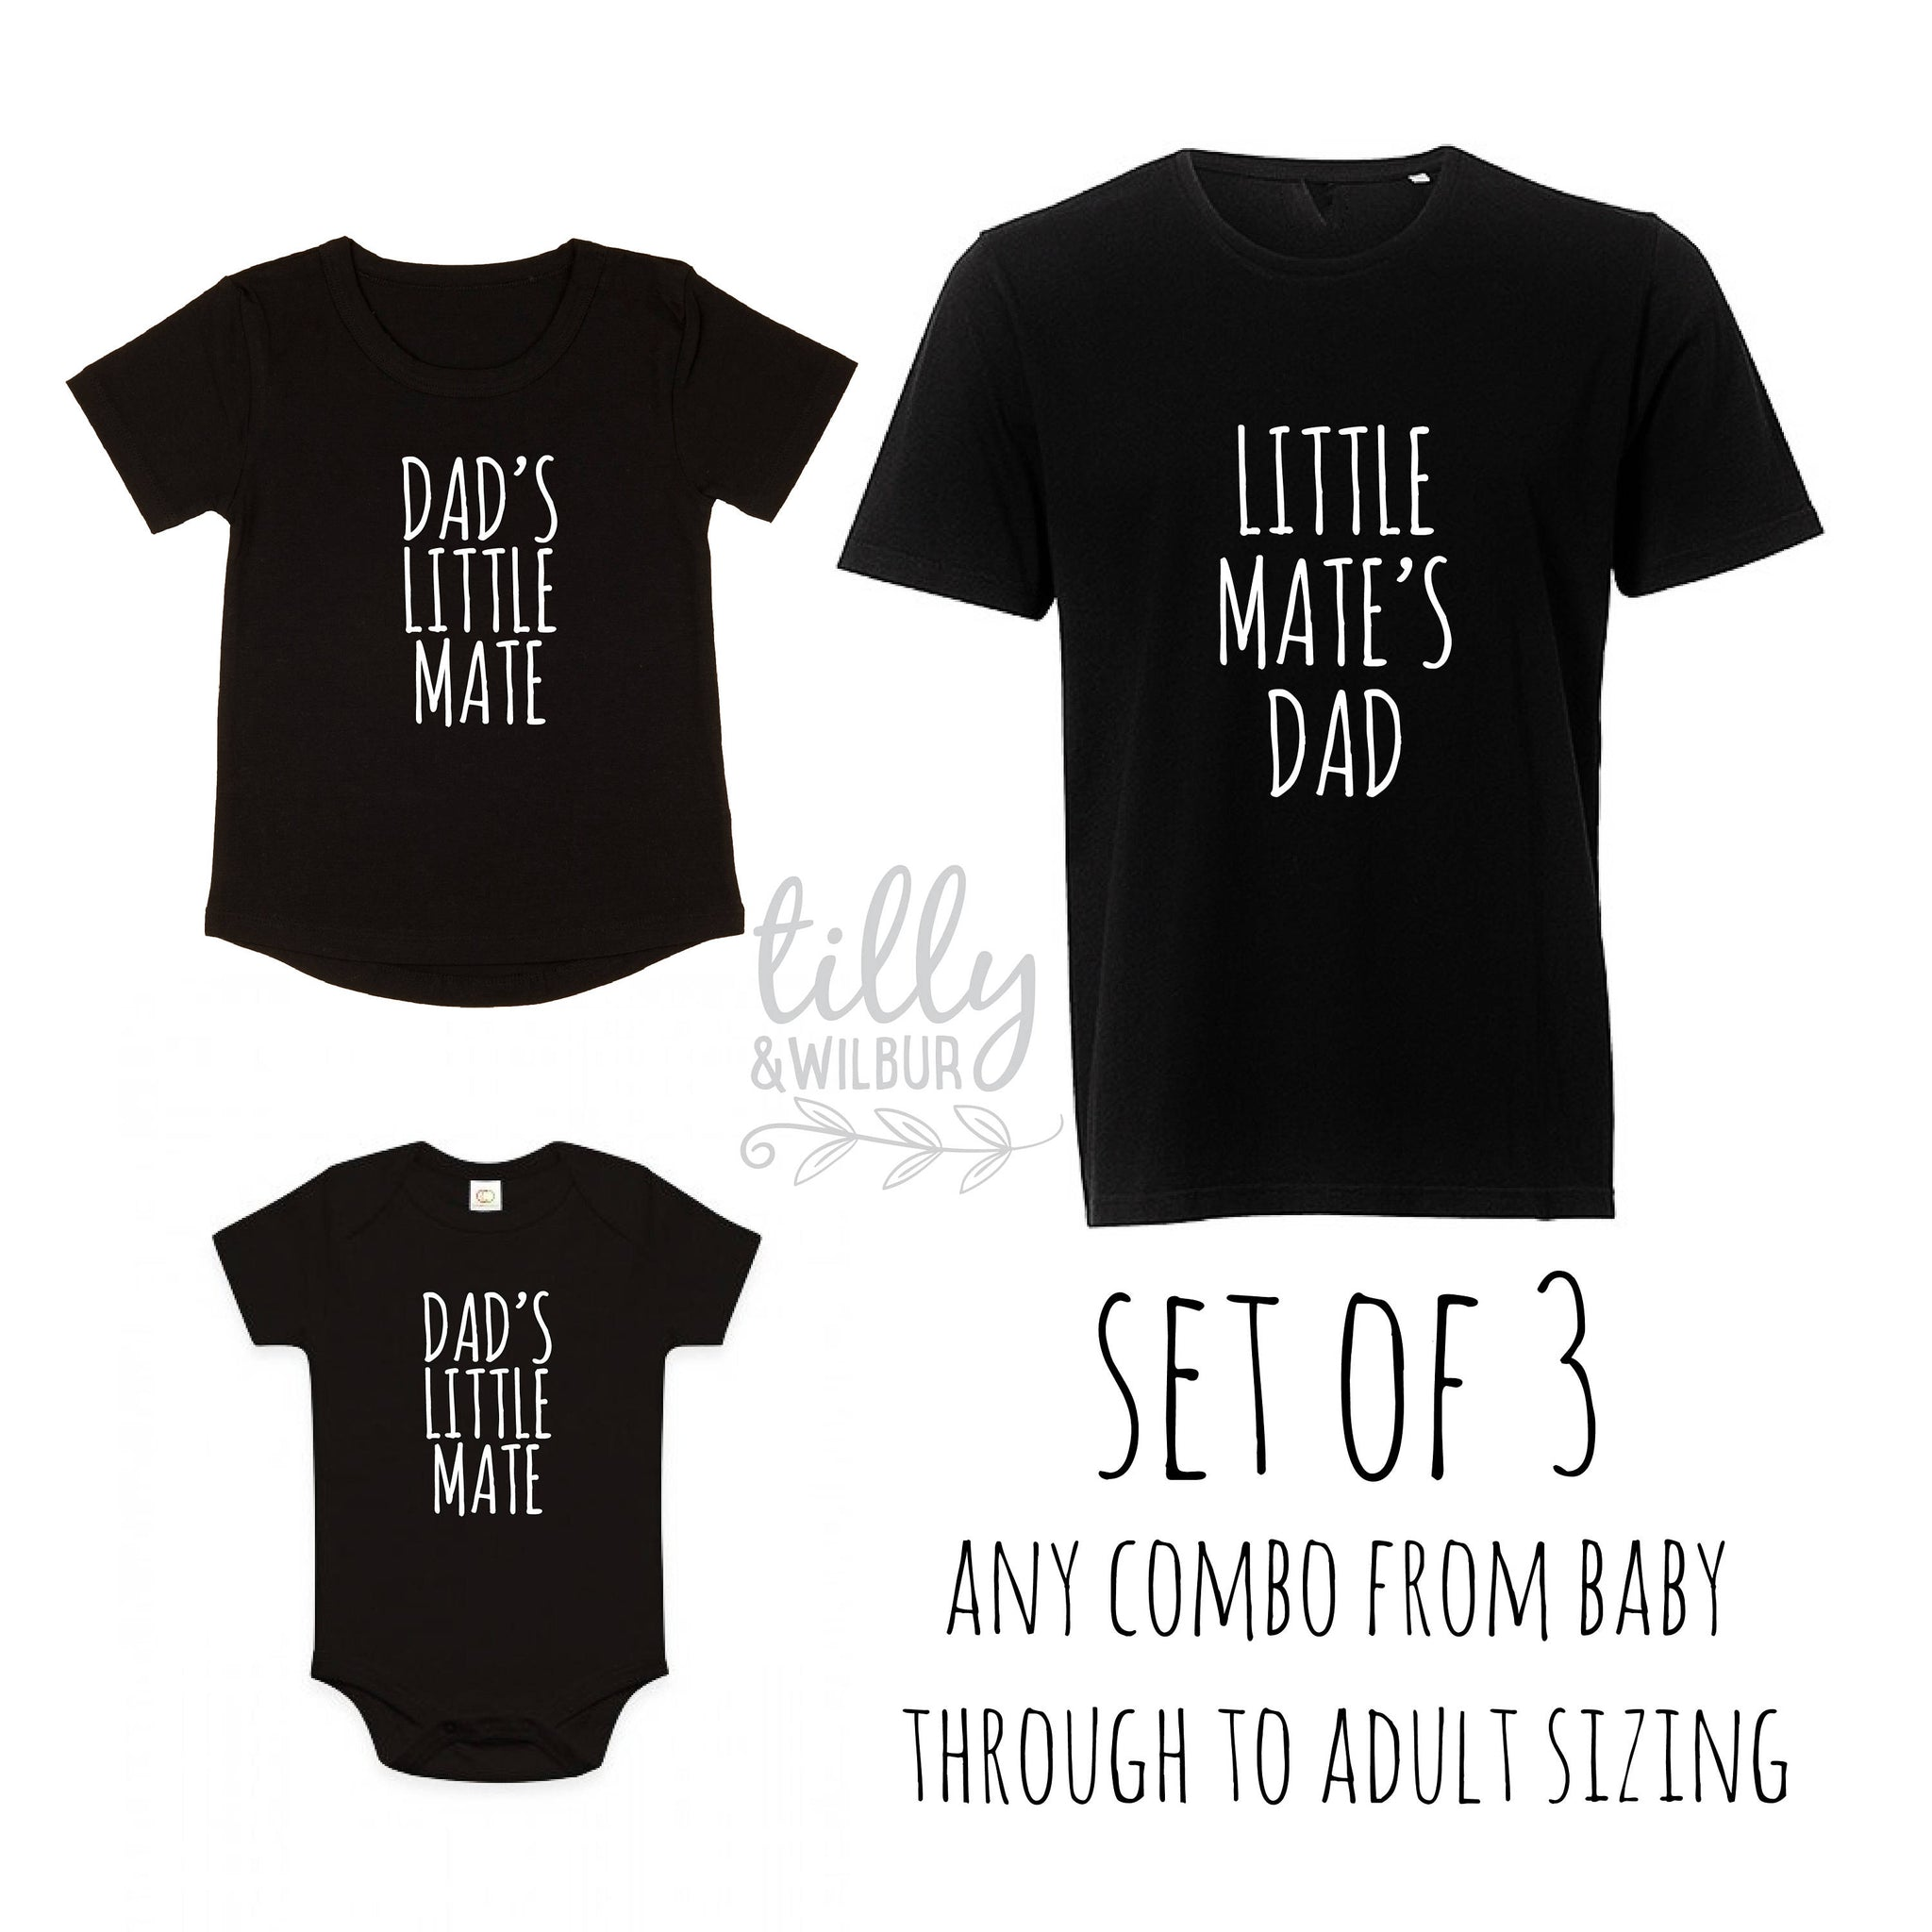 d9258460 Father's Day Shirts, Father Son Matching Shirts, Dad's Little Mate, Little  Mate's Dad